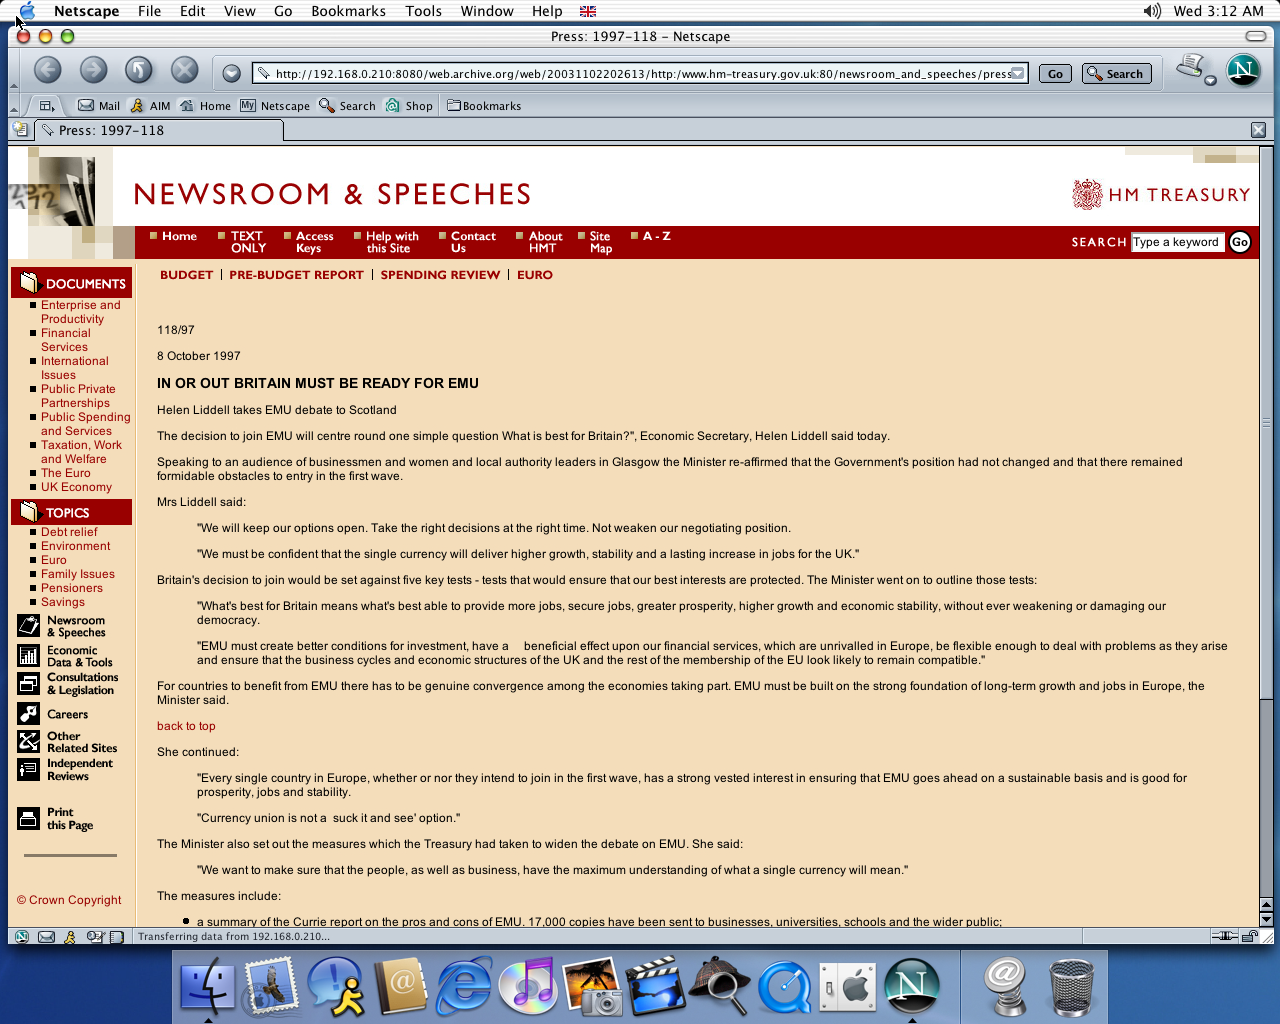 OS X 10.2 PPC with Netscape 7.0 displaying a page from Her Majesty's Treasury archived at November 02, 2003 at 20:26:13